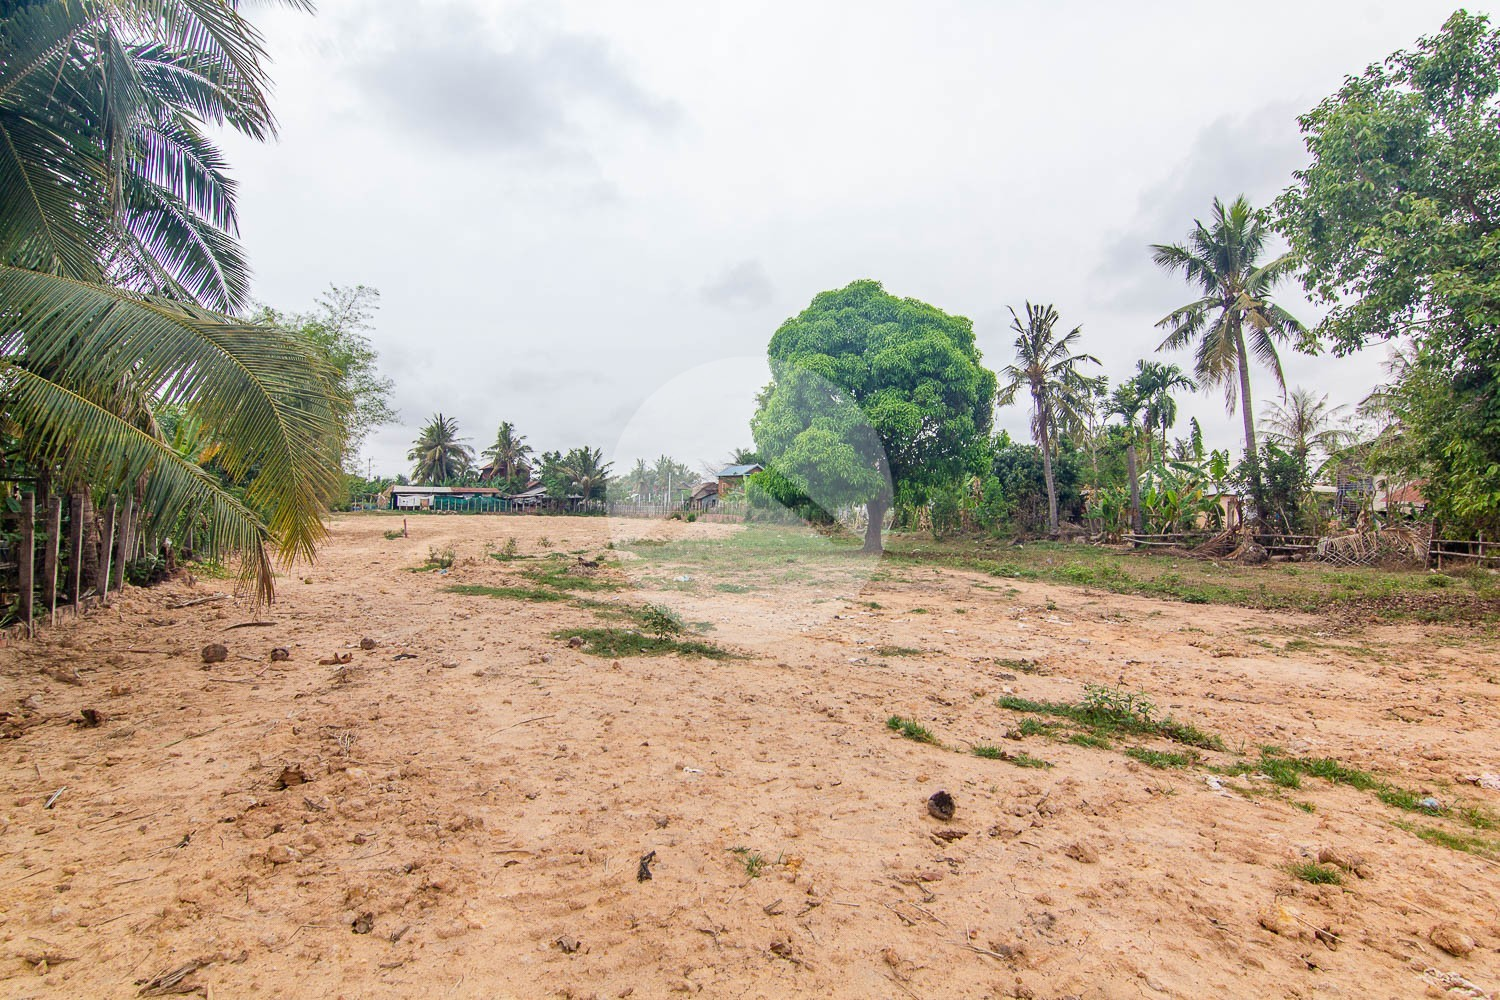 1560 Sqm Residential Land For Sale - Svay Dangkum, Siem Reap